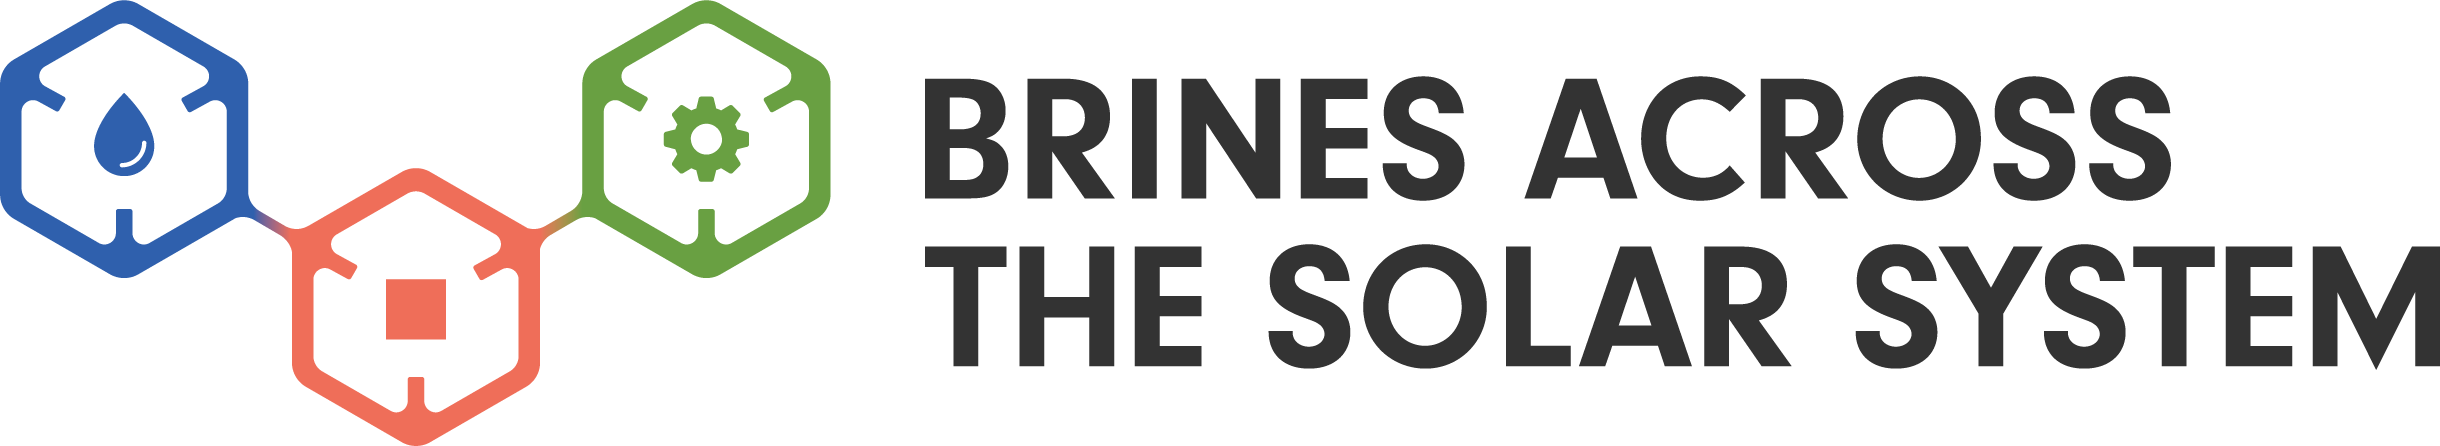 Brines Across the Solar System